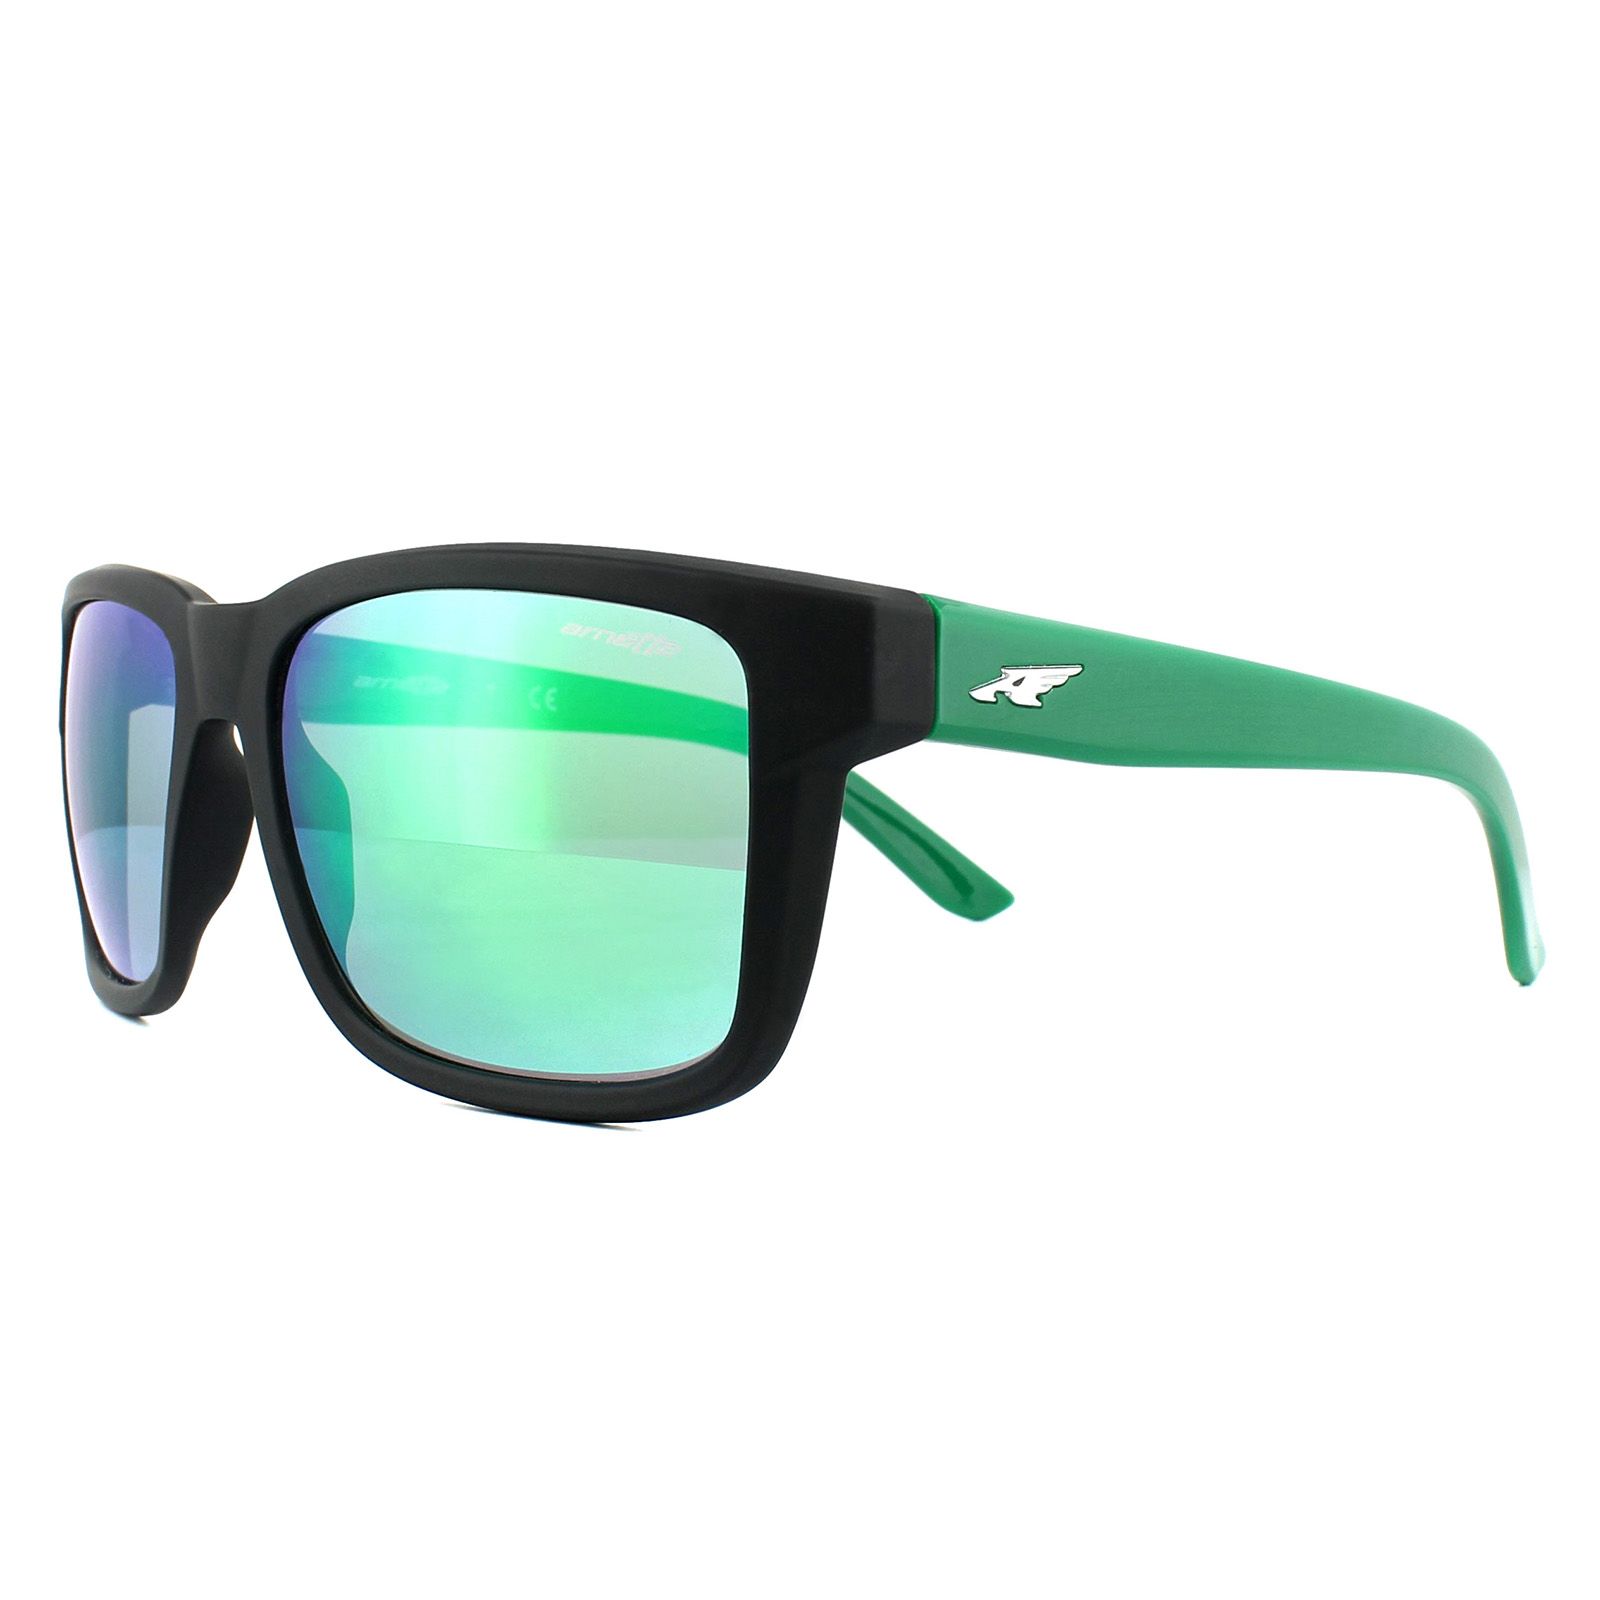 c8e2e7a37a343 Sentinel Arnette Sunglasses Swindle 4218 23343R Fuzzy Black Green Mirror